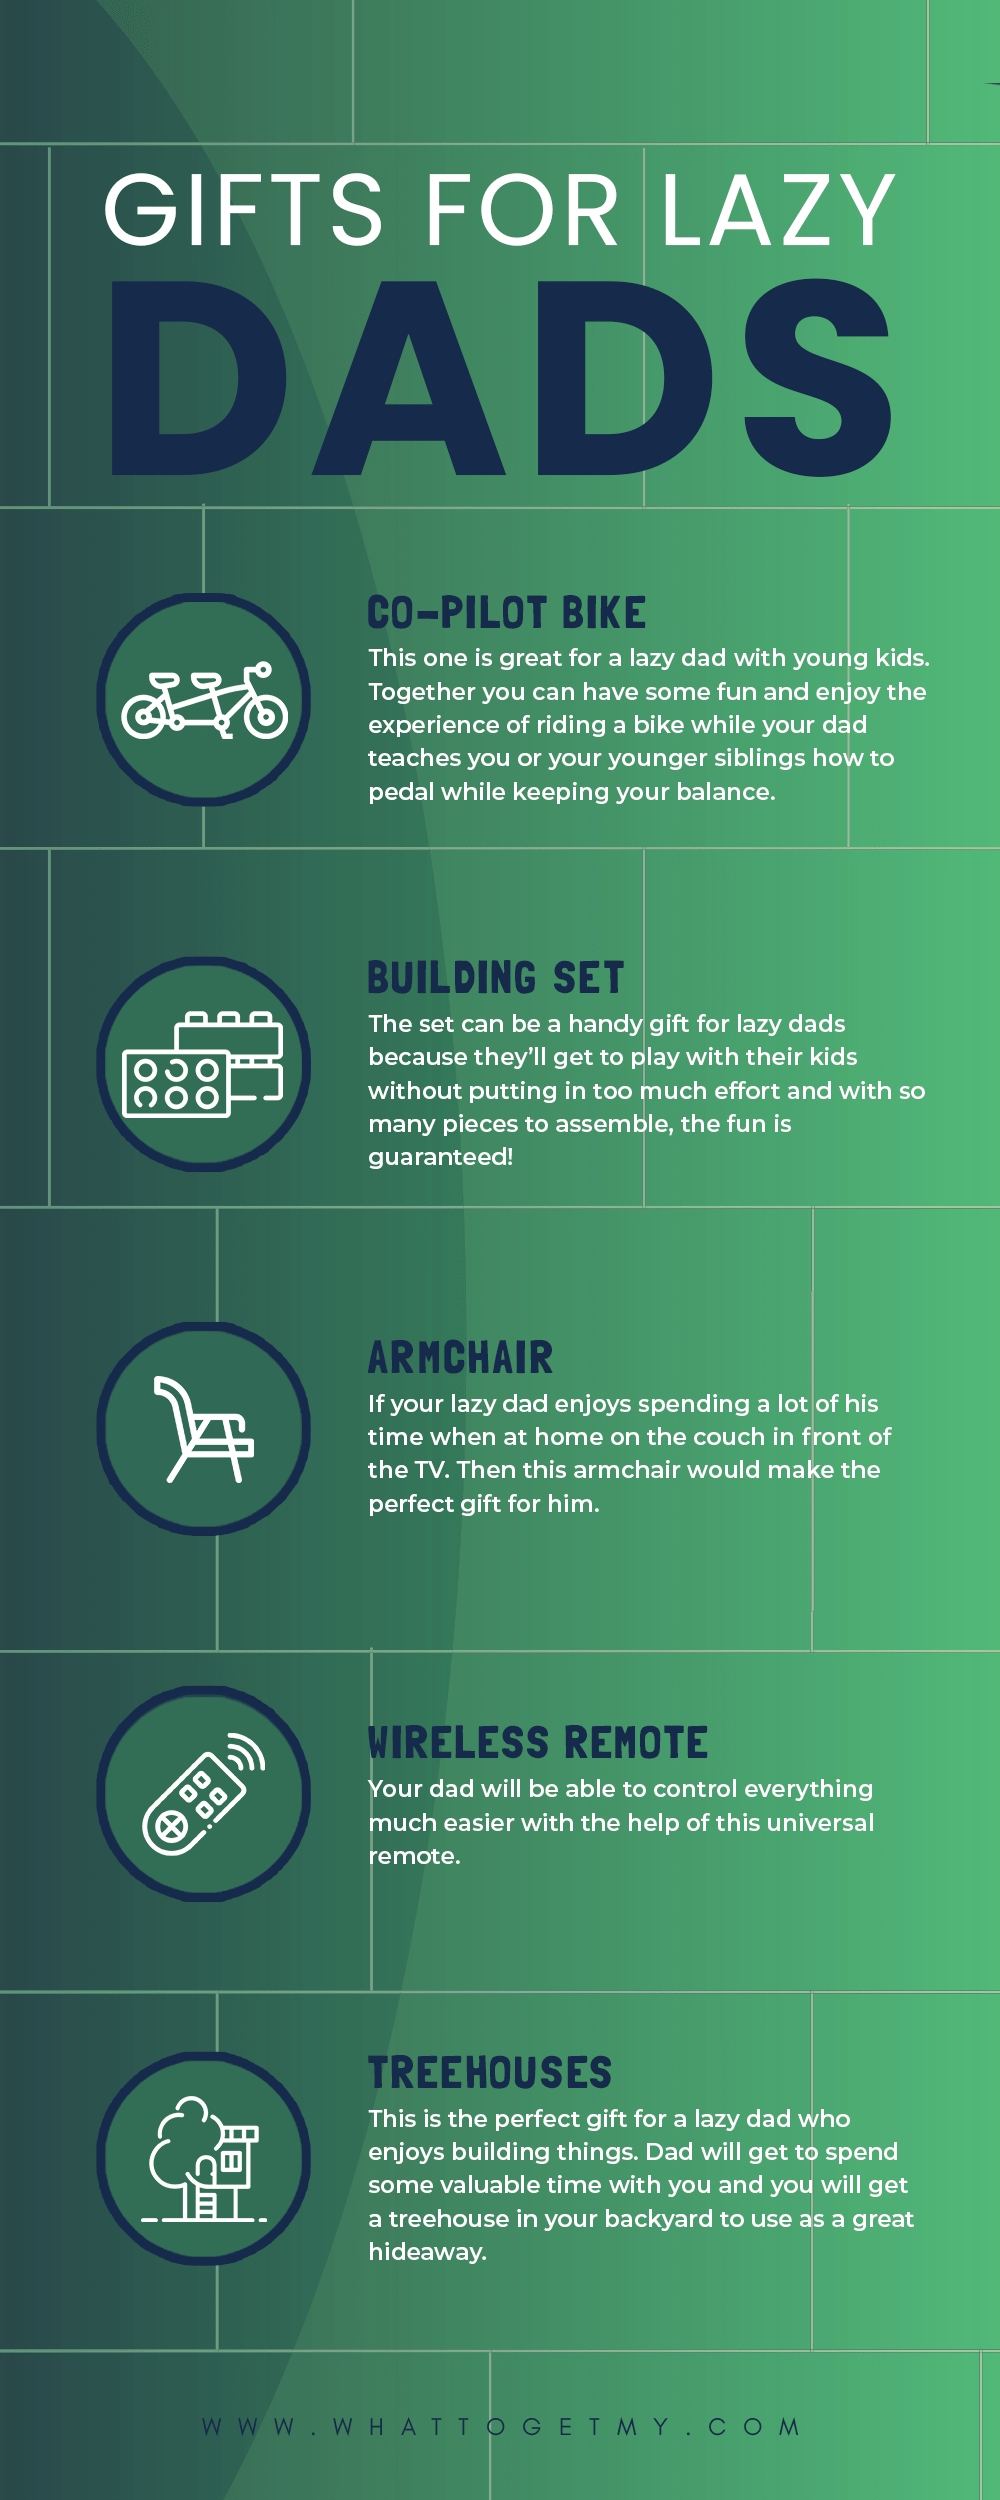 Gifts for Lazy Dads Infographic